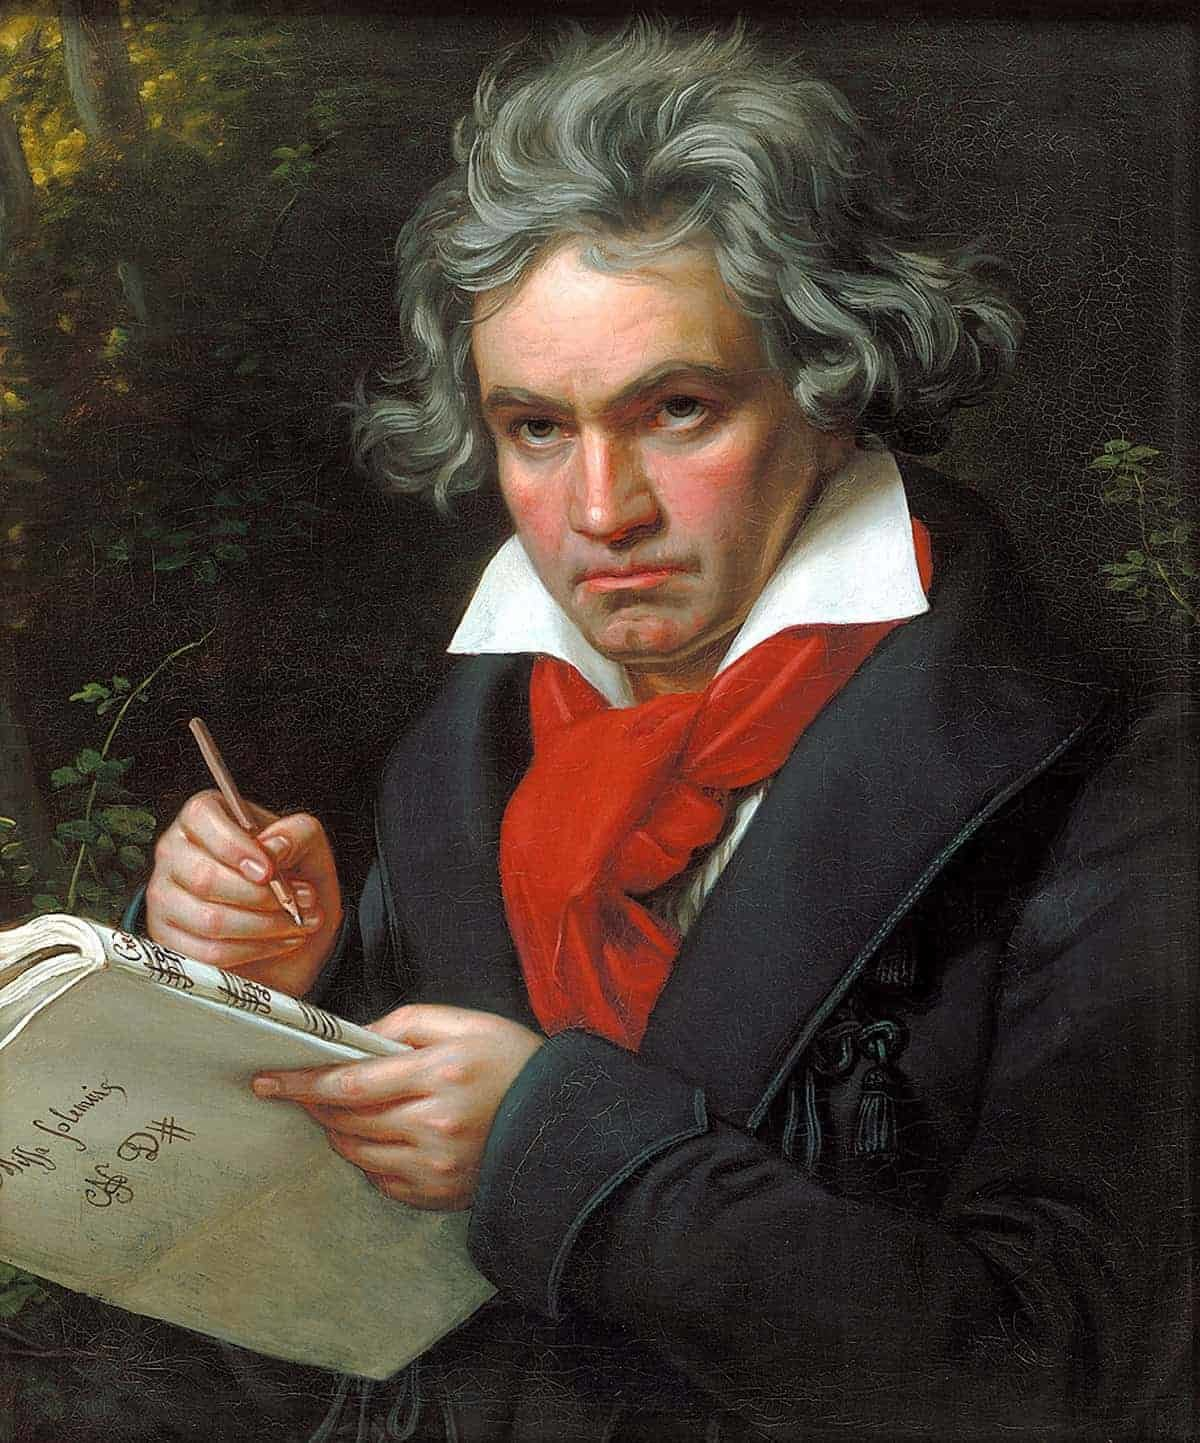 Why Did Beethoven Get Rid of His Chickens?